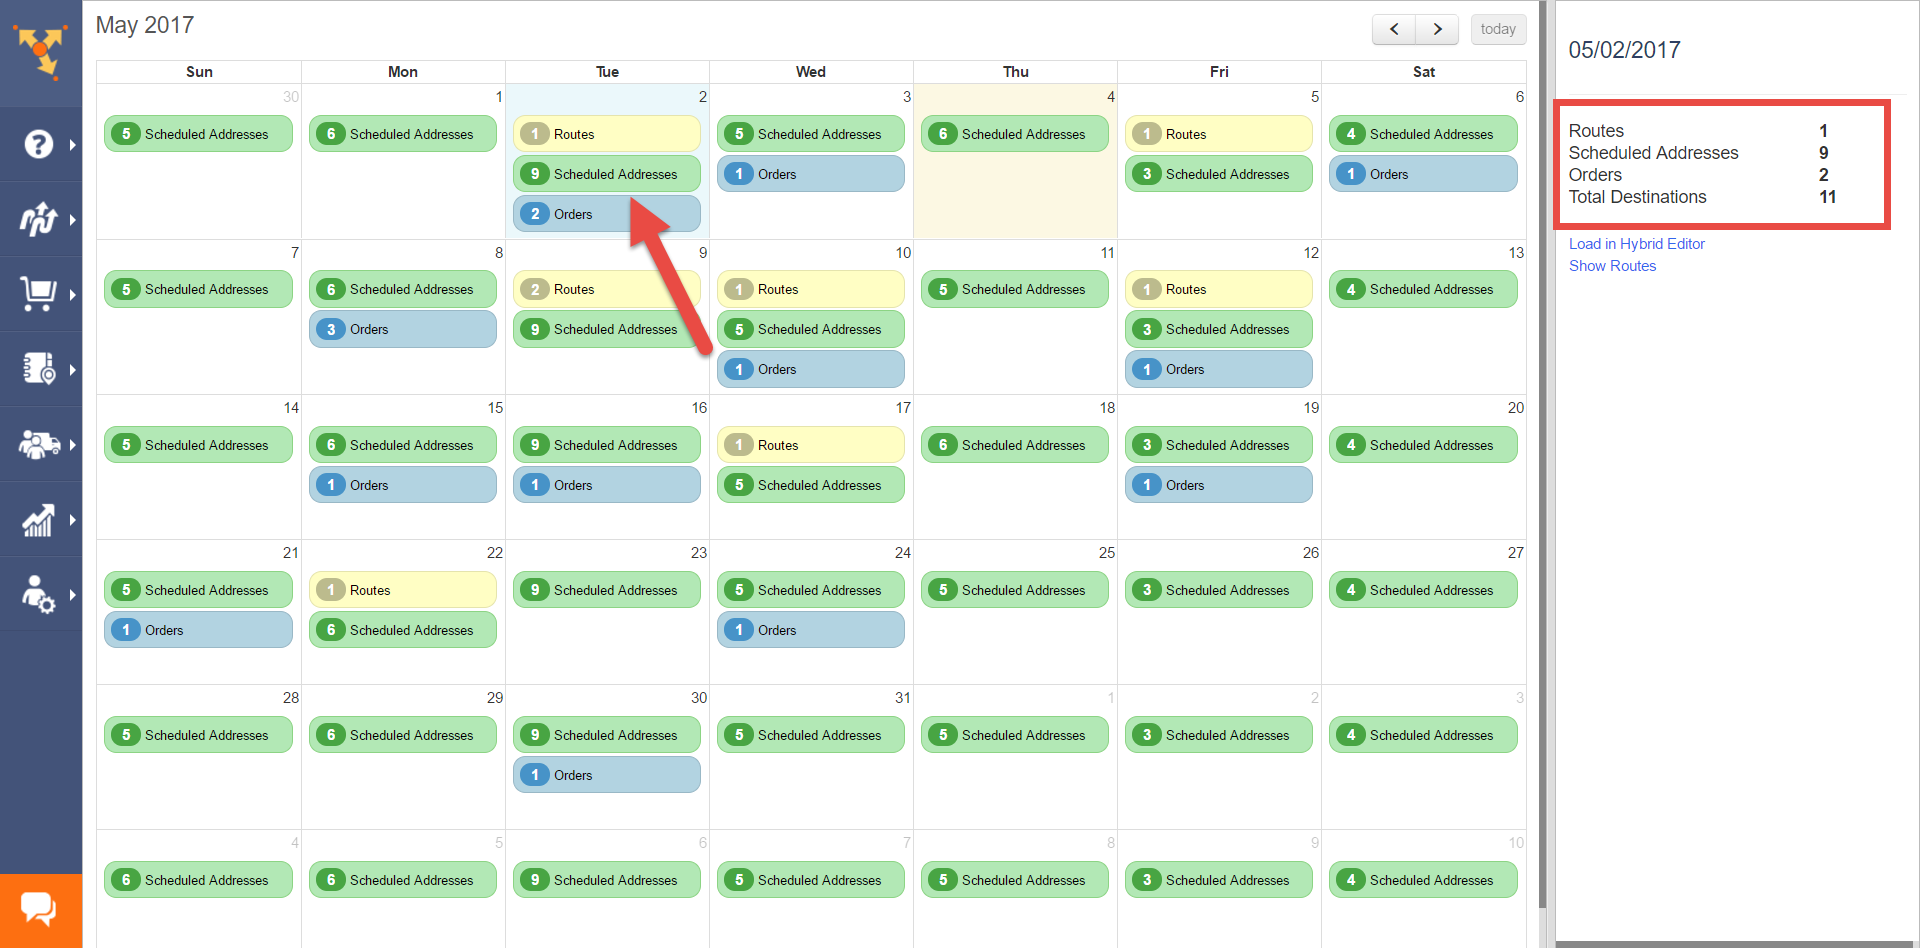 With route scheduling software like Route4Me, you can view scheduled events in a routing calendar